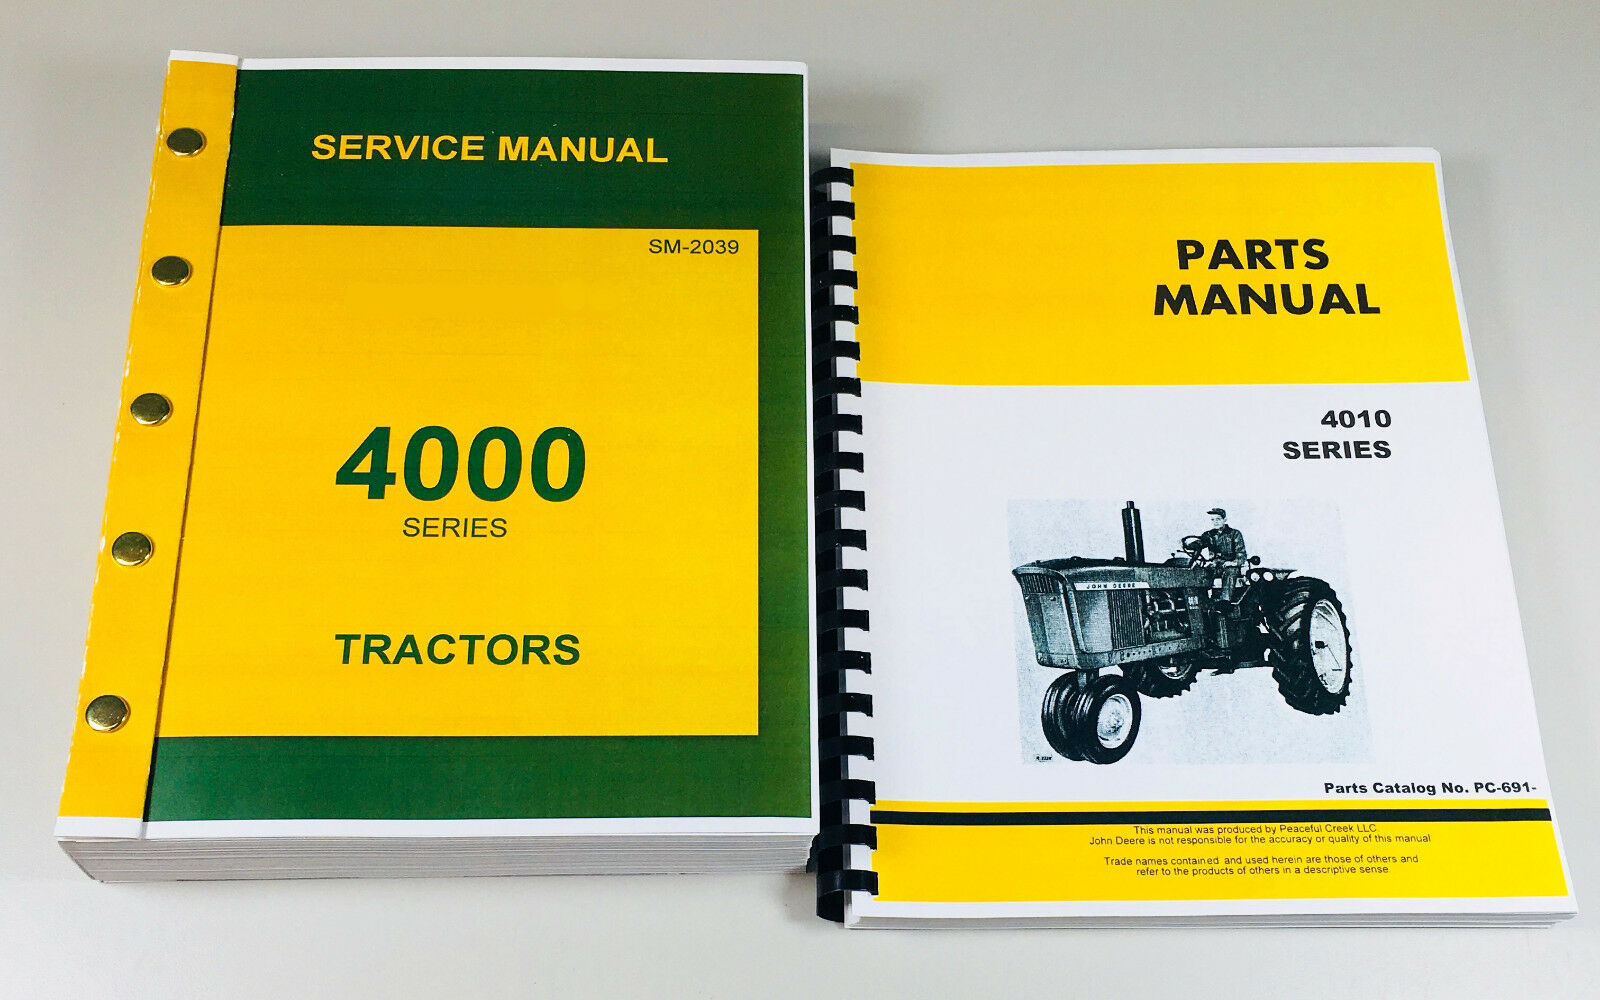 Complete Service and Parts Manuals Reproduction of the Factory Manuals